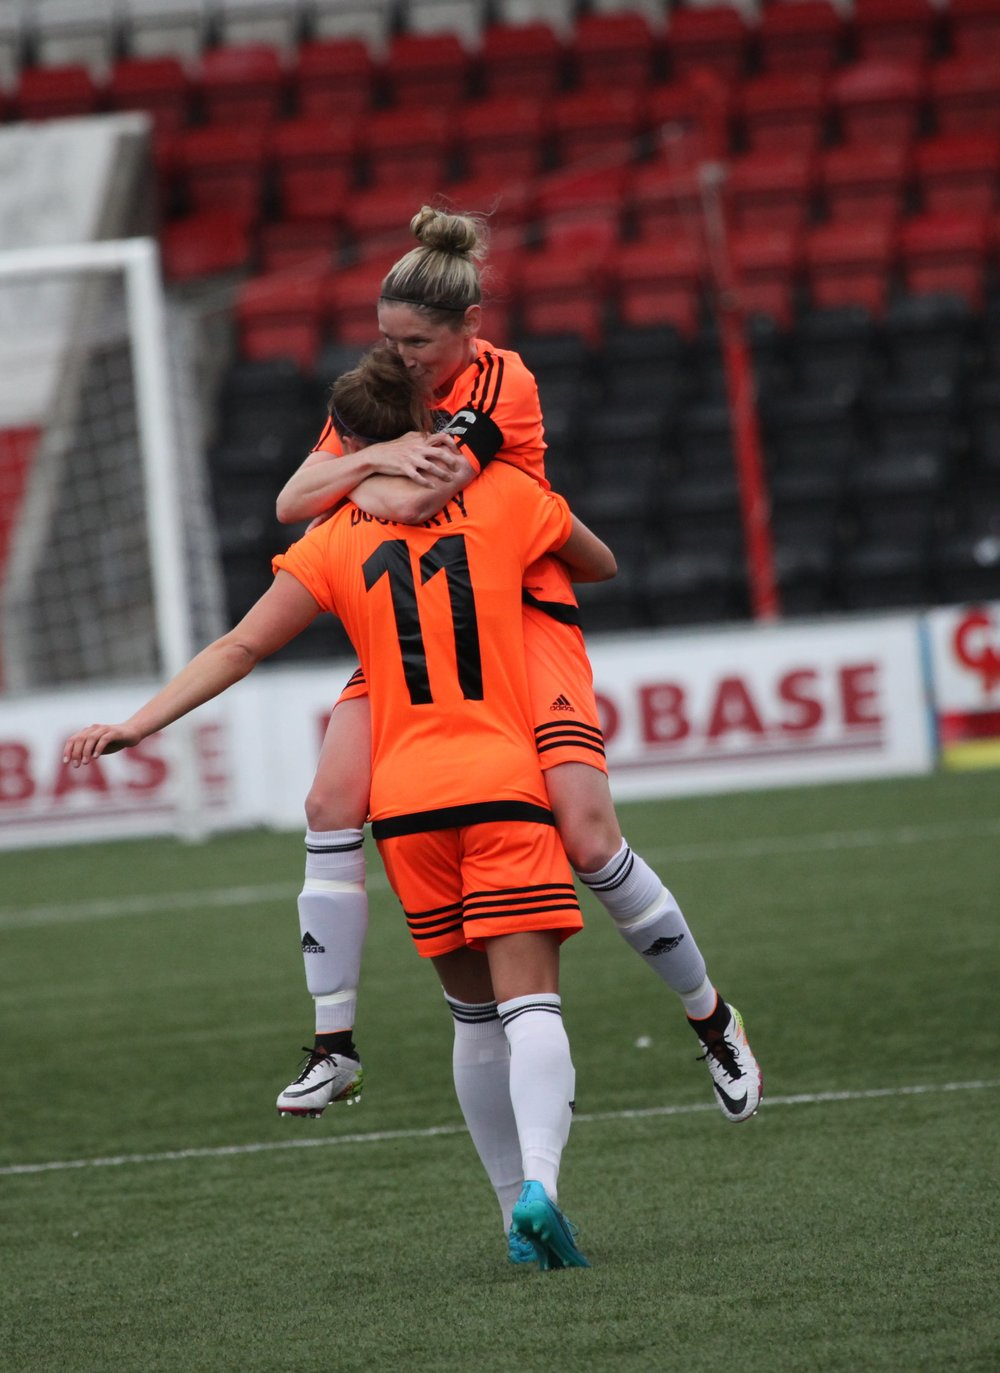 Docherty and Ross celebrate. Image by Andy Buist